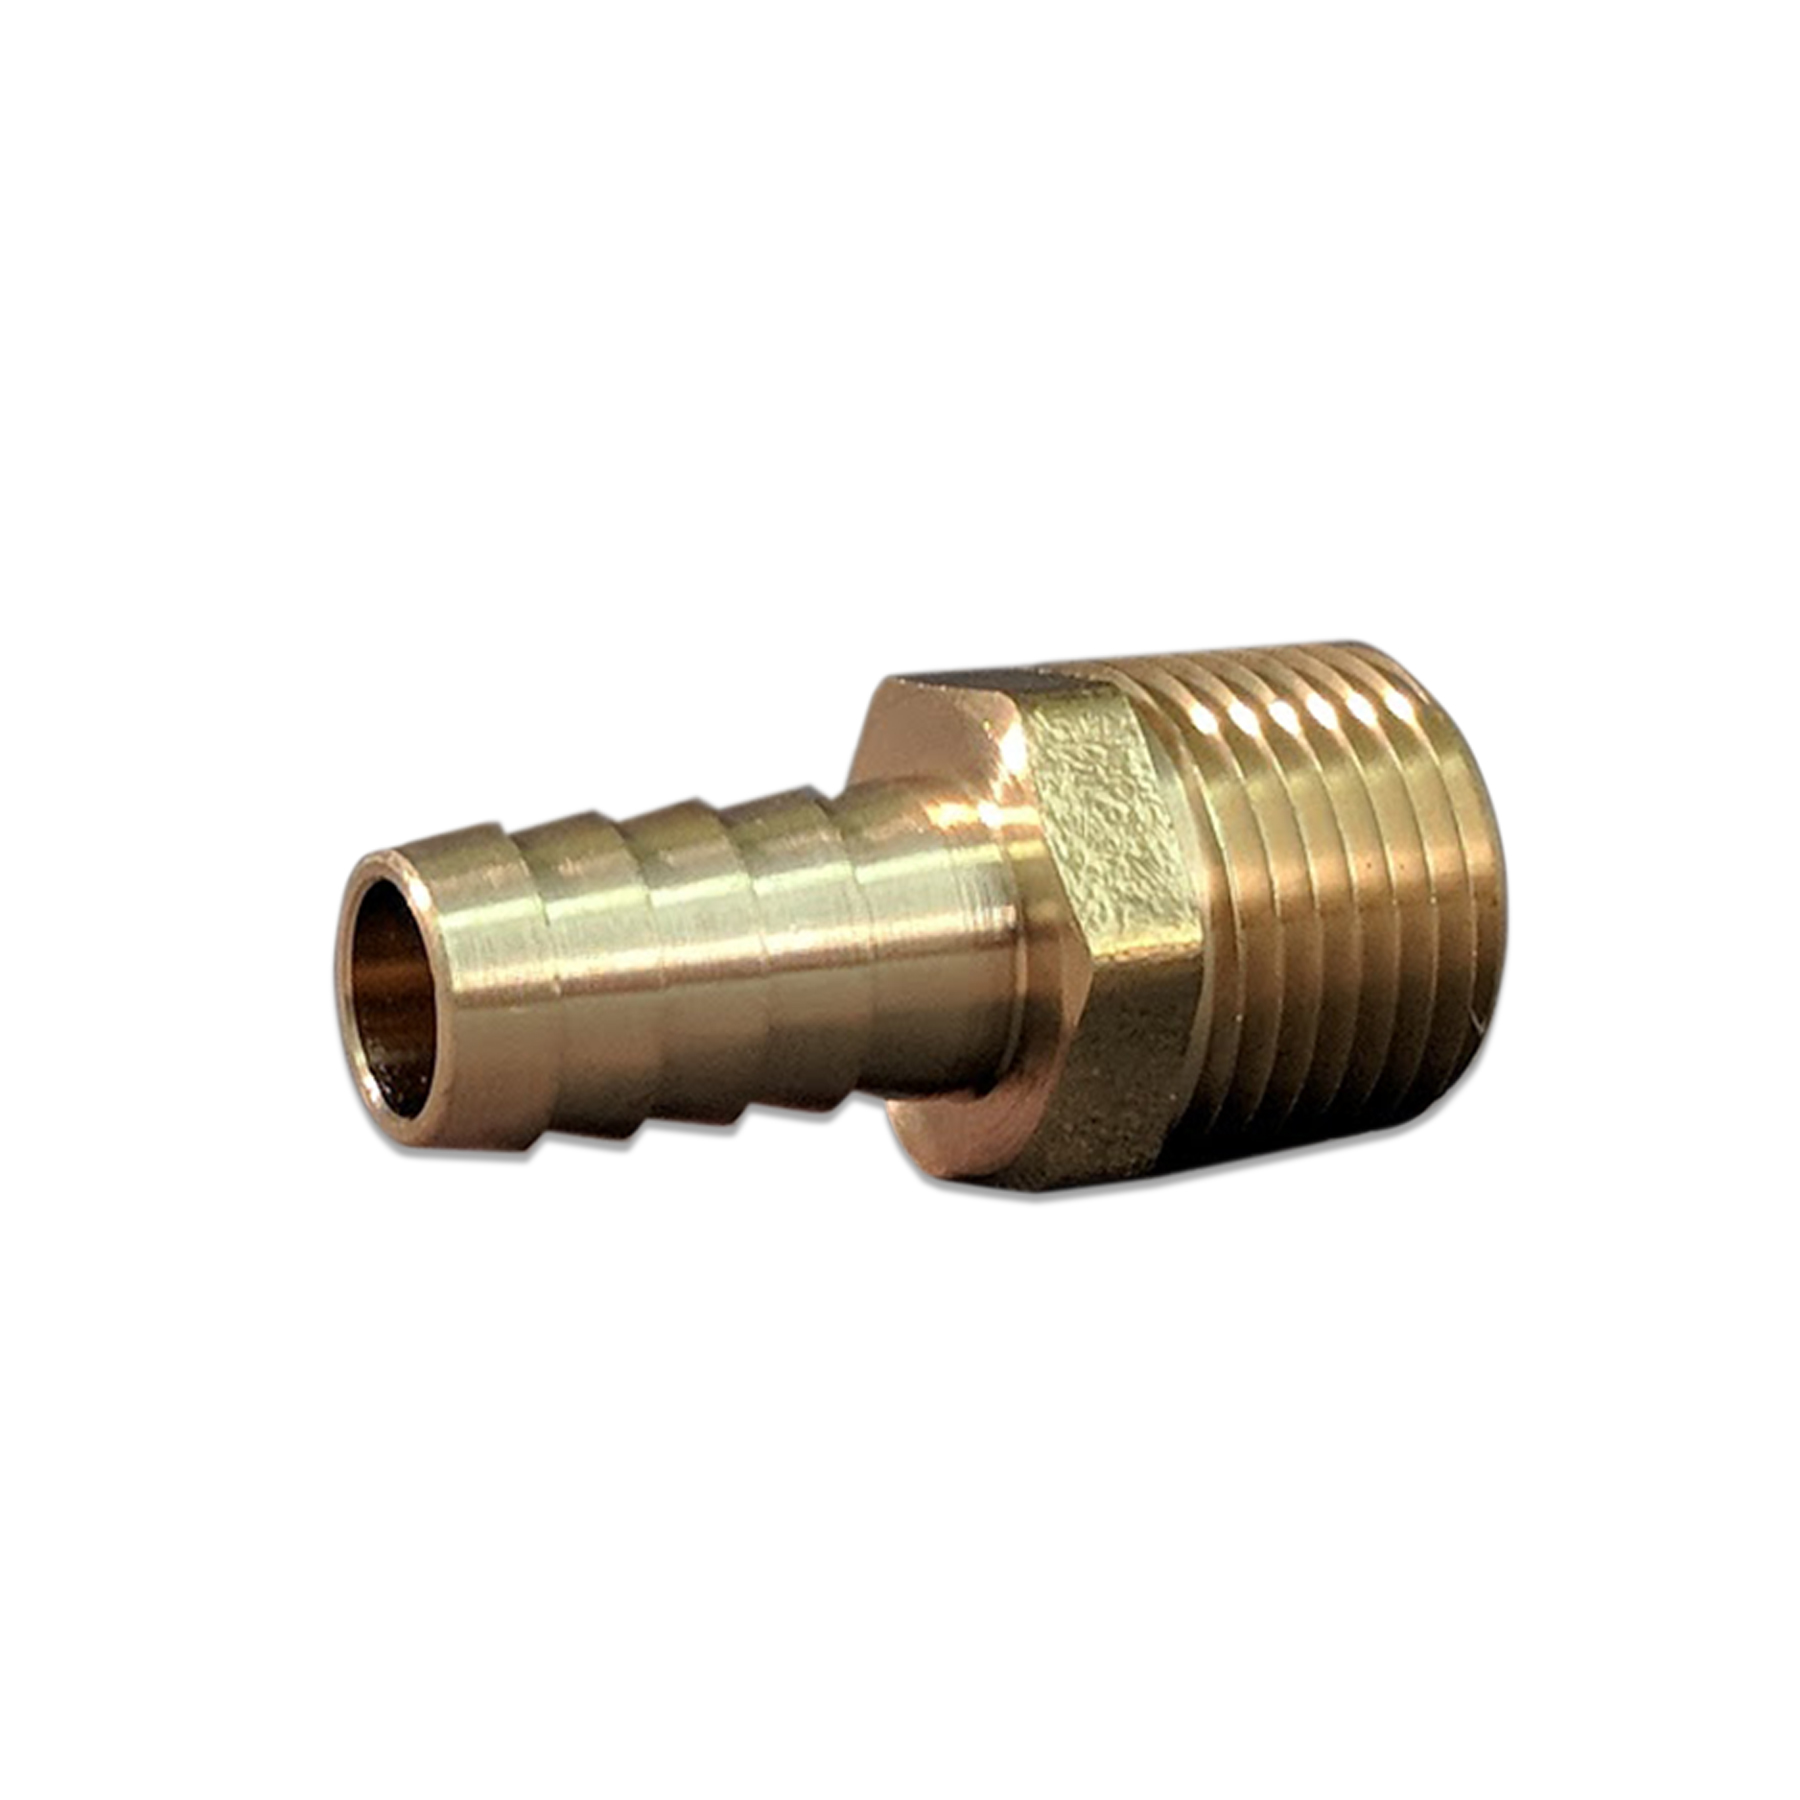 Brass Barb Fitting, 1/2 in. x 1/2 in. (M) NPT